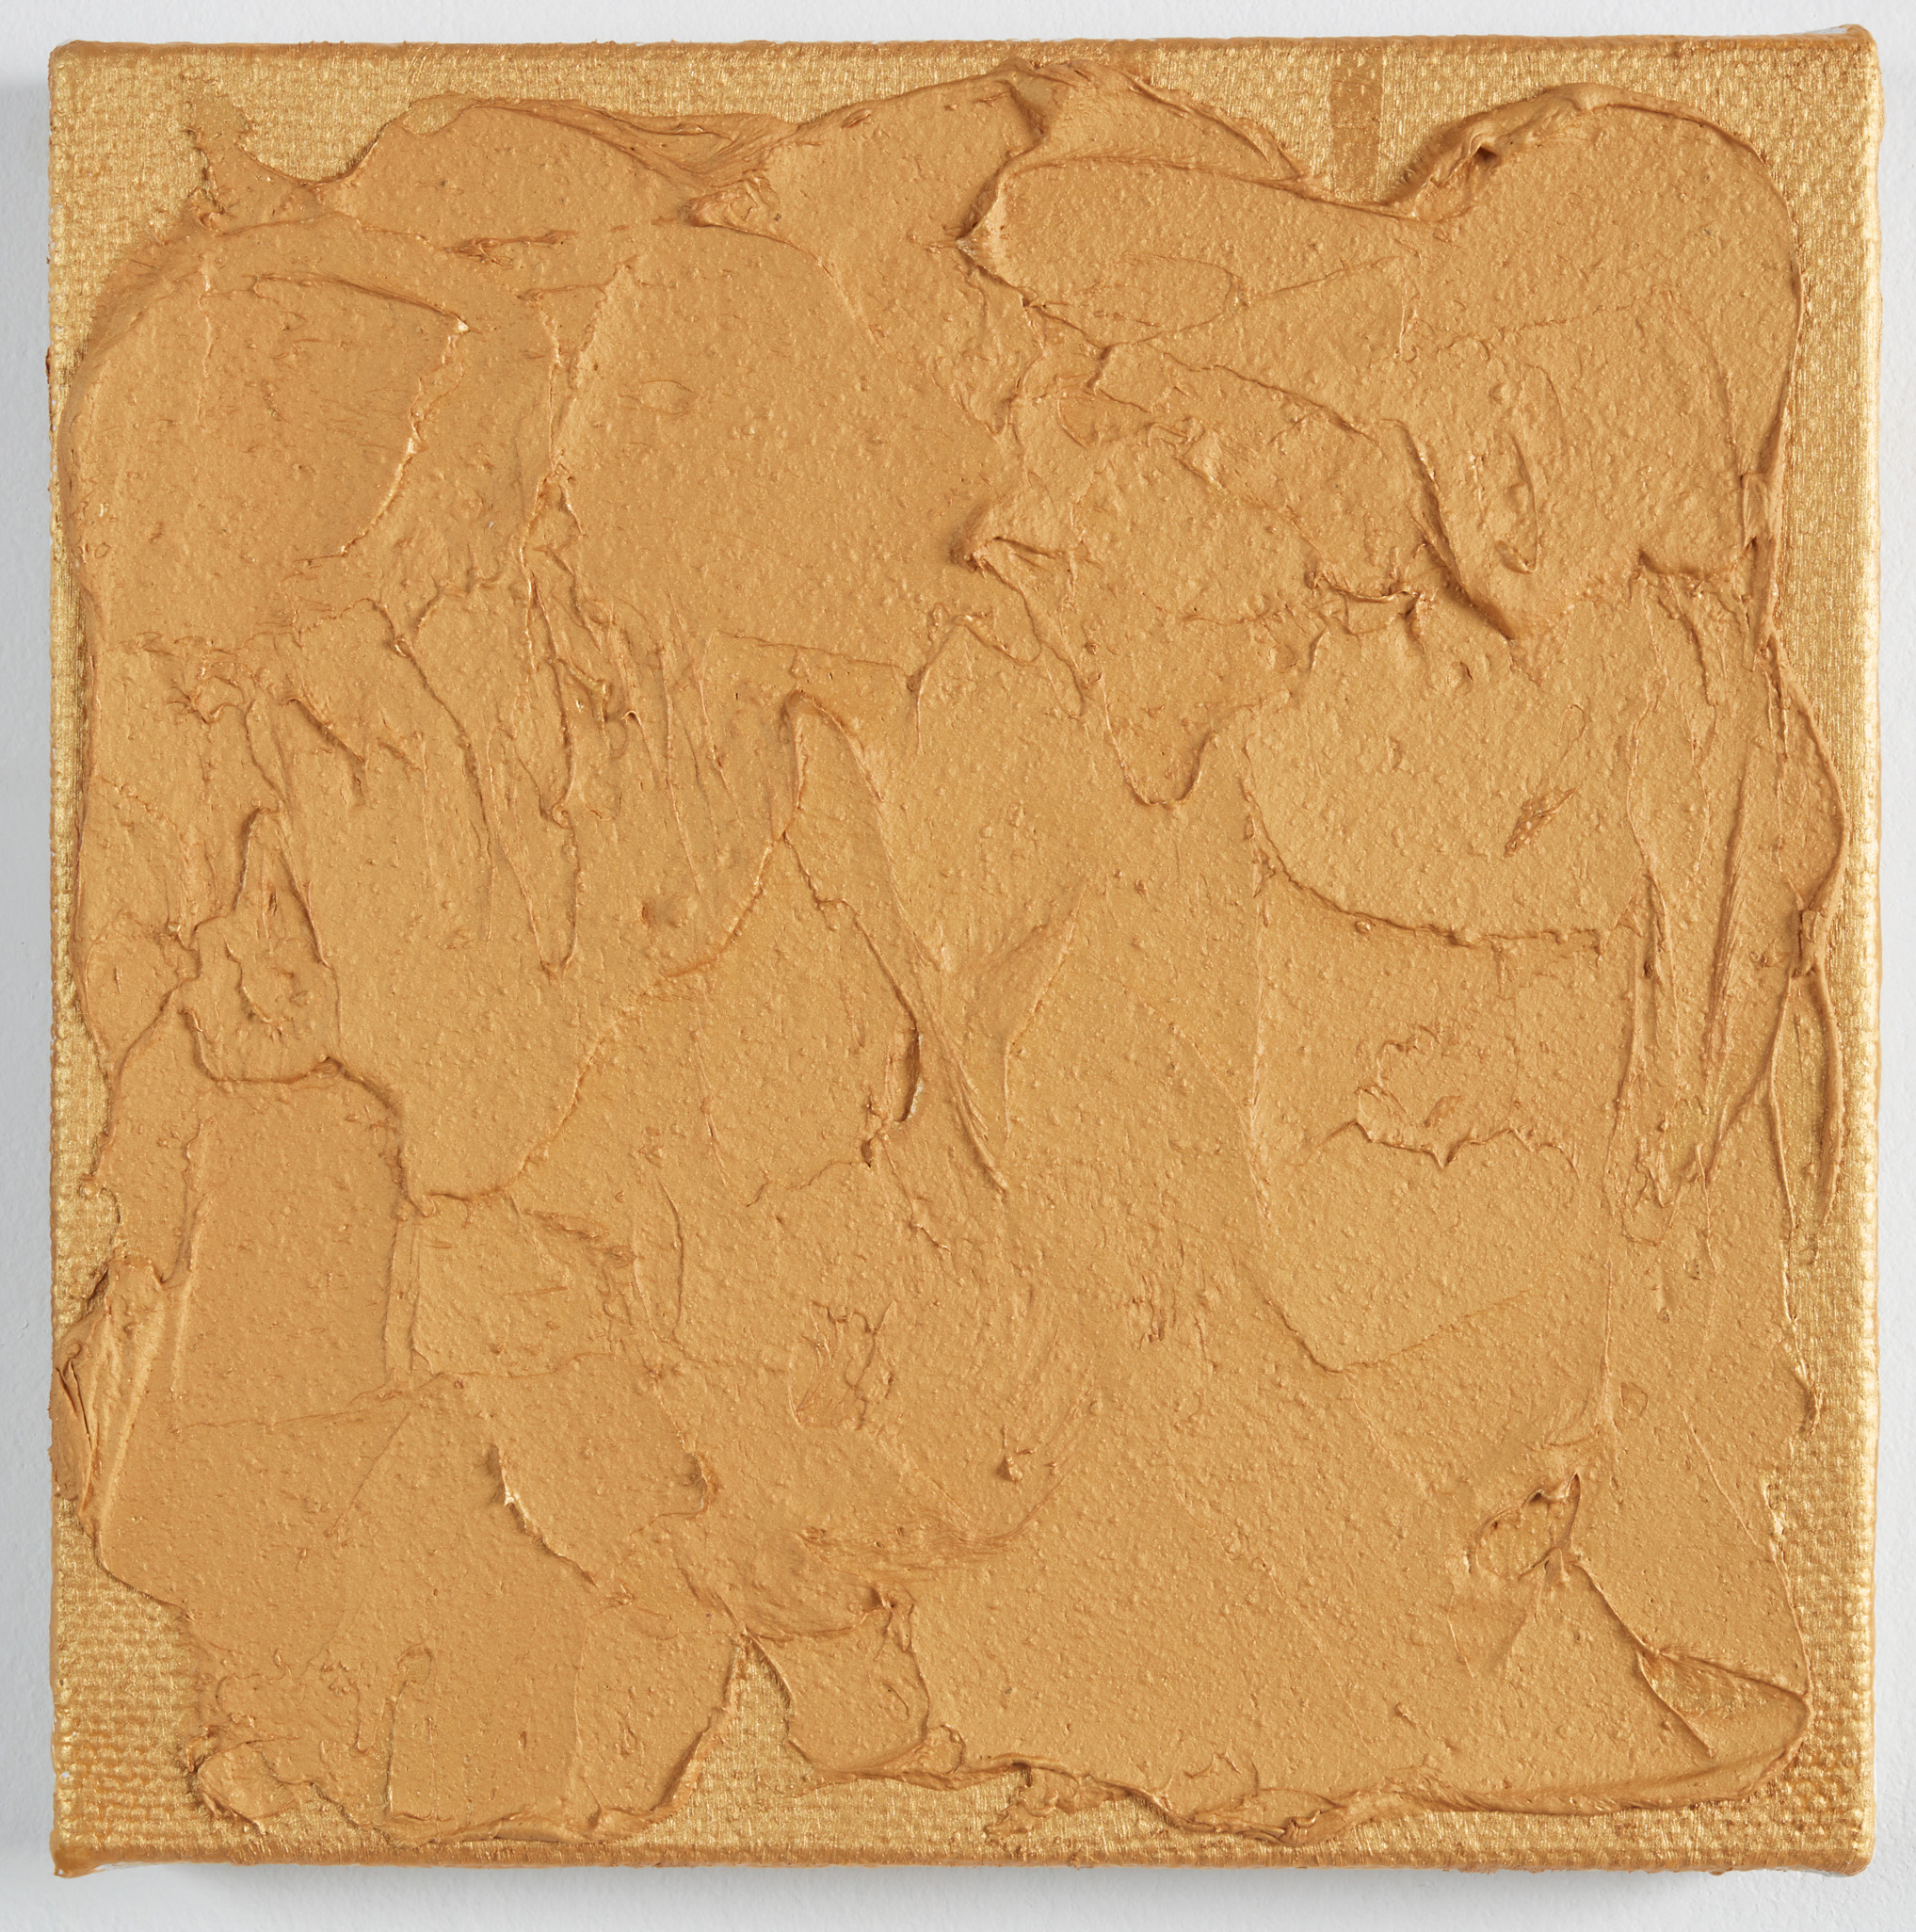 DAVID SERISIER  gold square painting no.3 , 2019 oil, wax and acrylic on linen 30.5 x 30.5 cm